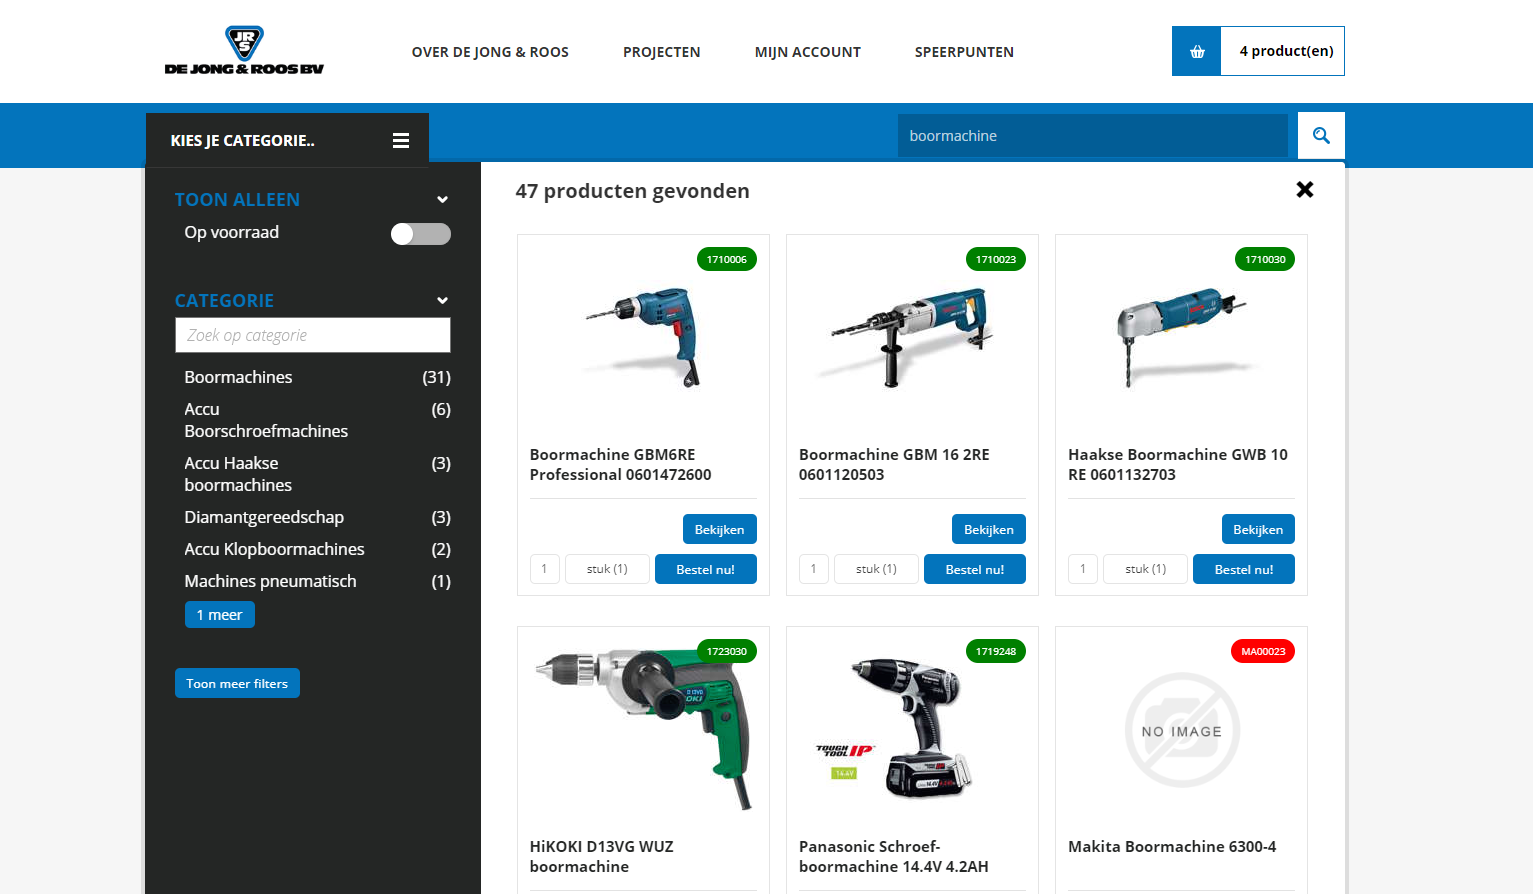 nopcommerce solr search example